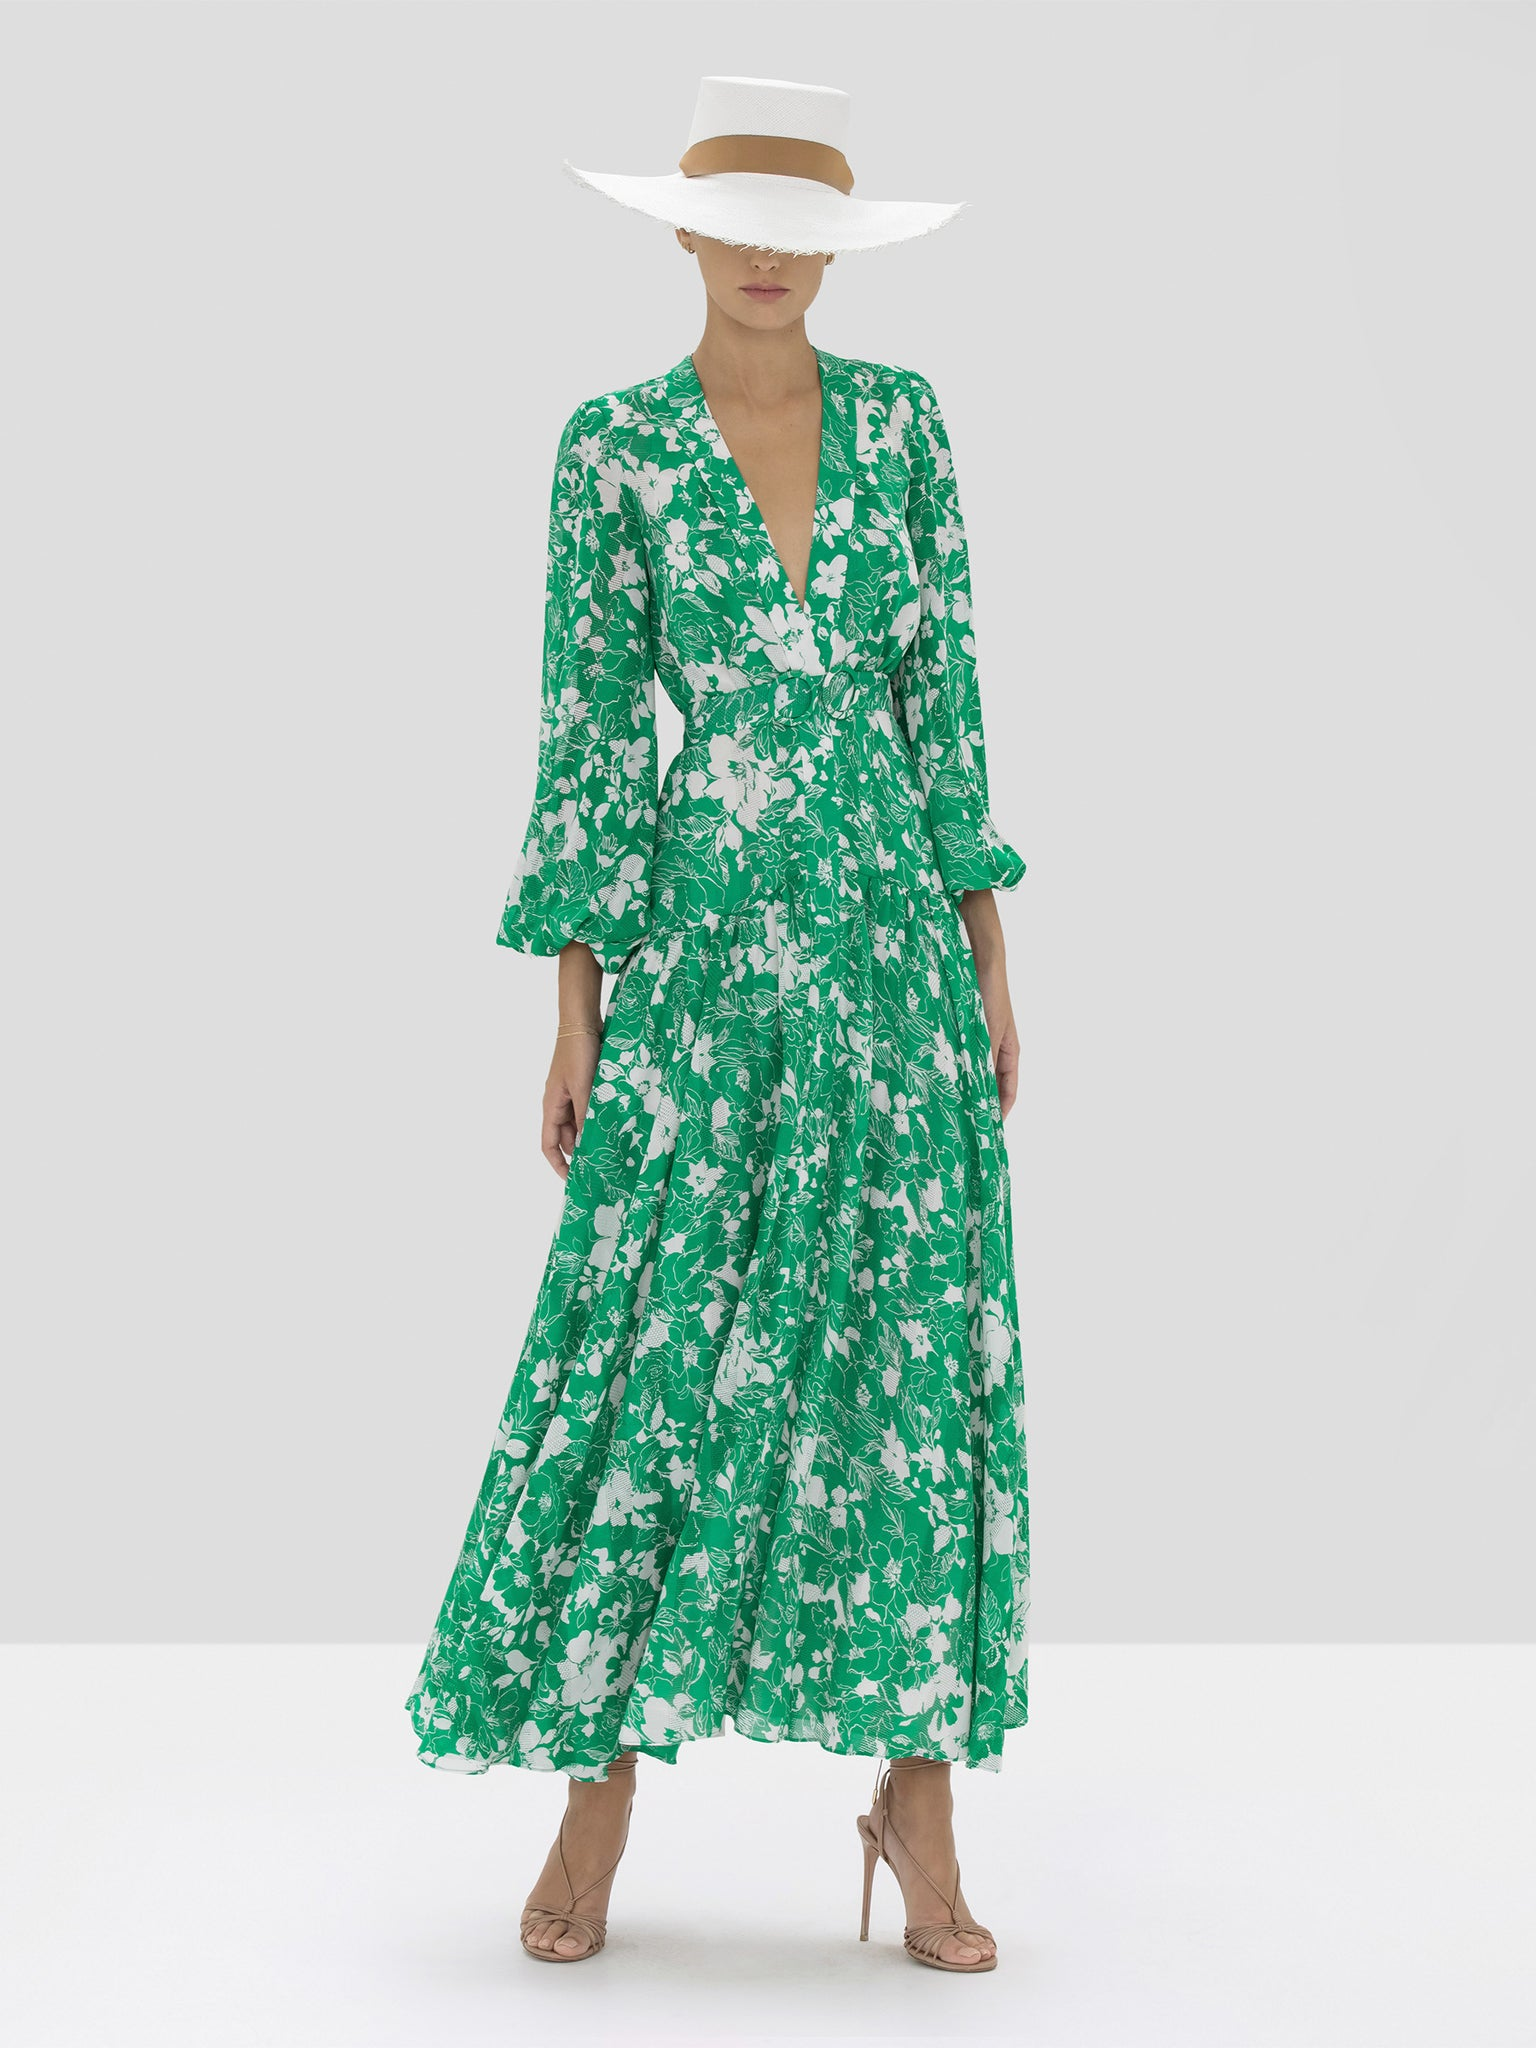 The Kazmera Dress in Emerald Floral from the Spring Summer 2020 Ready To Wear Collection.